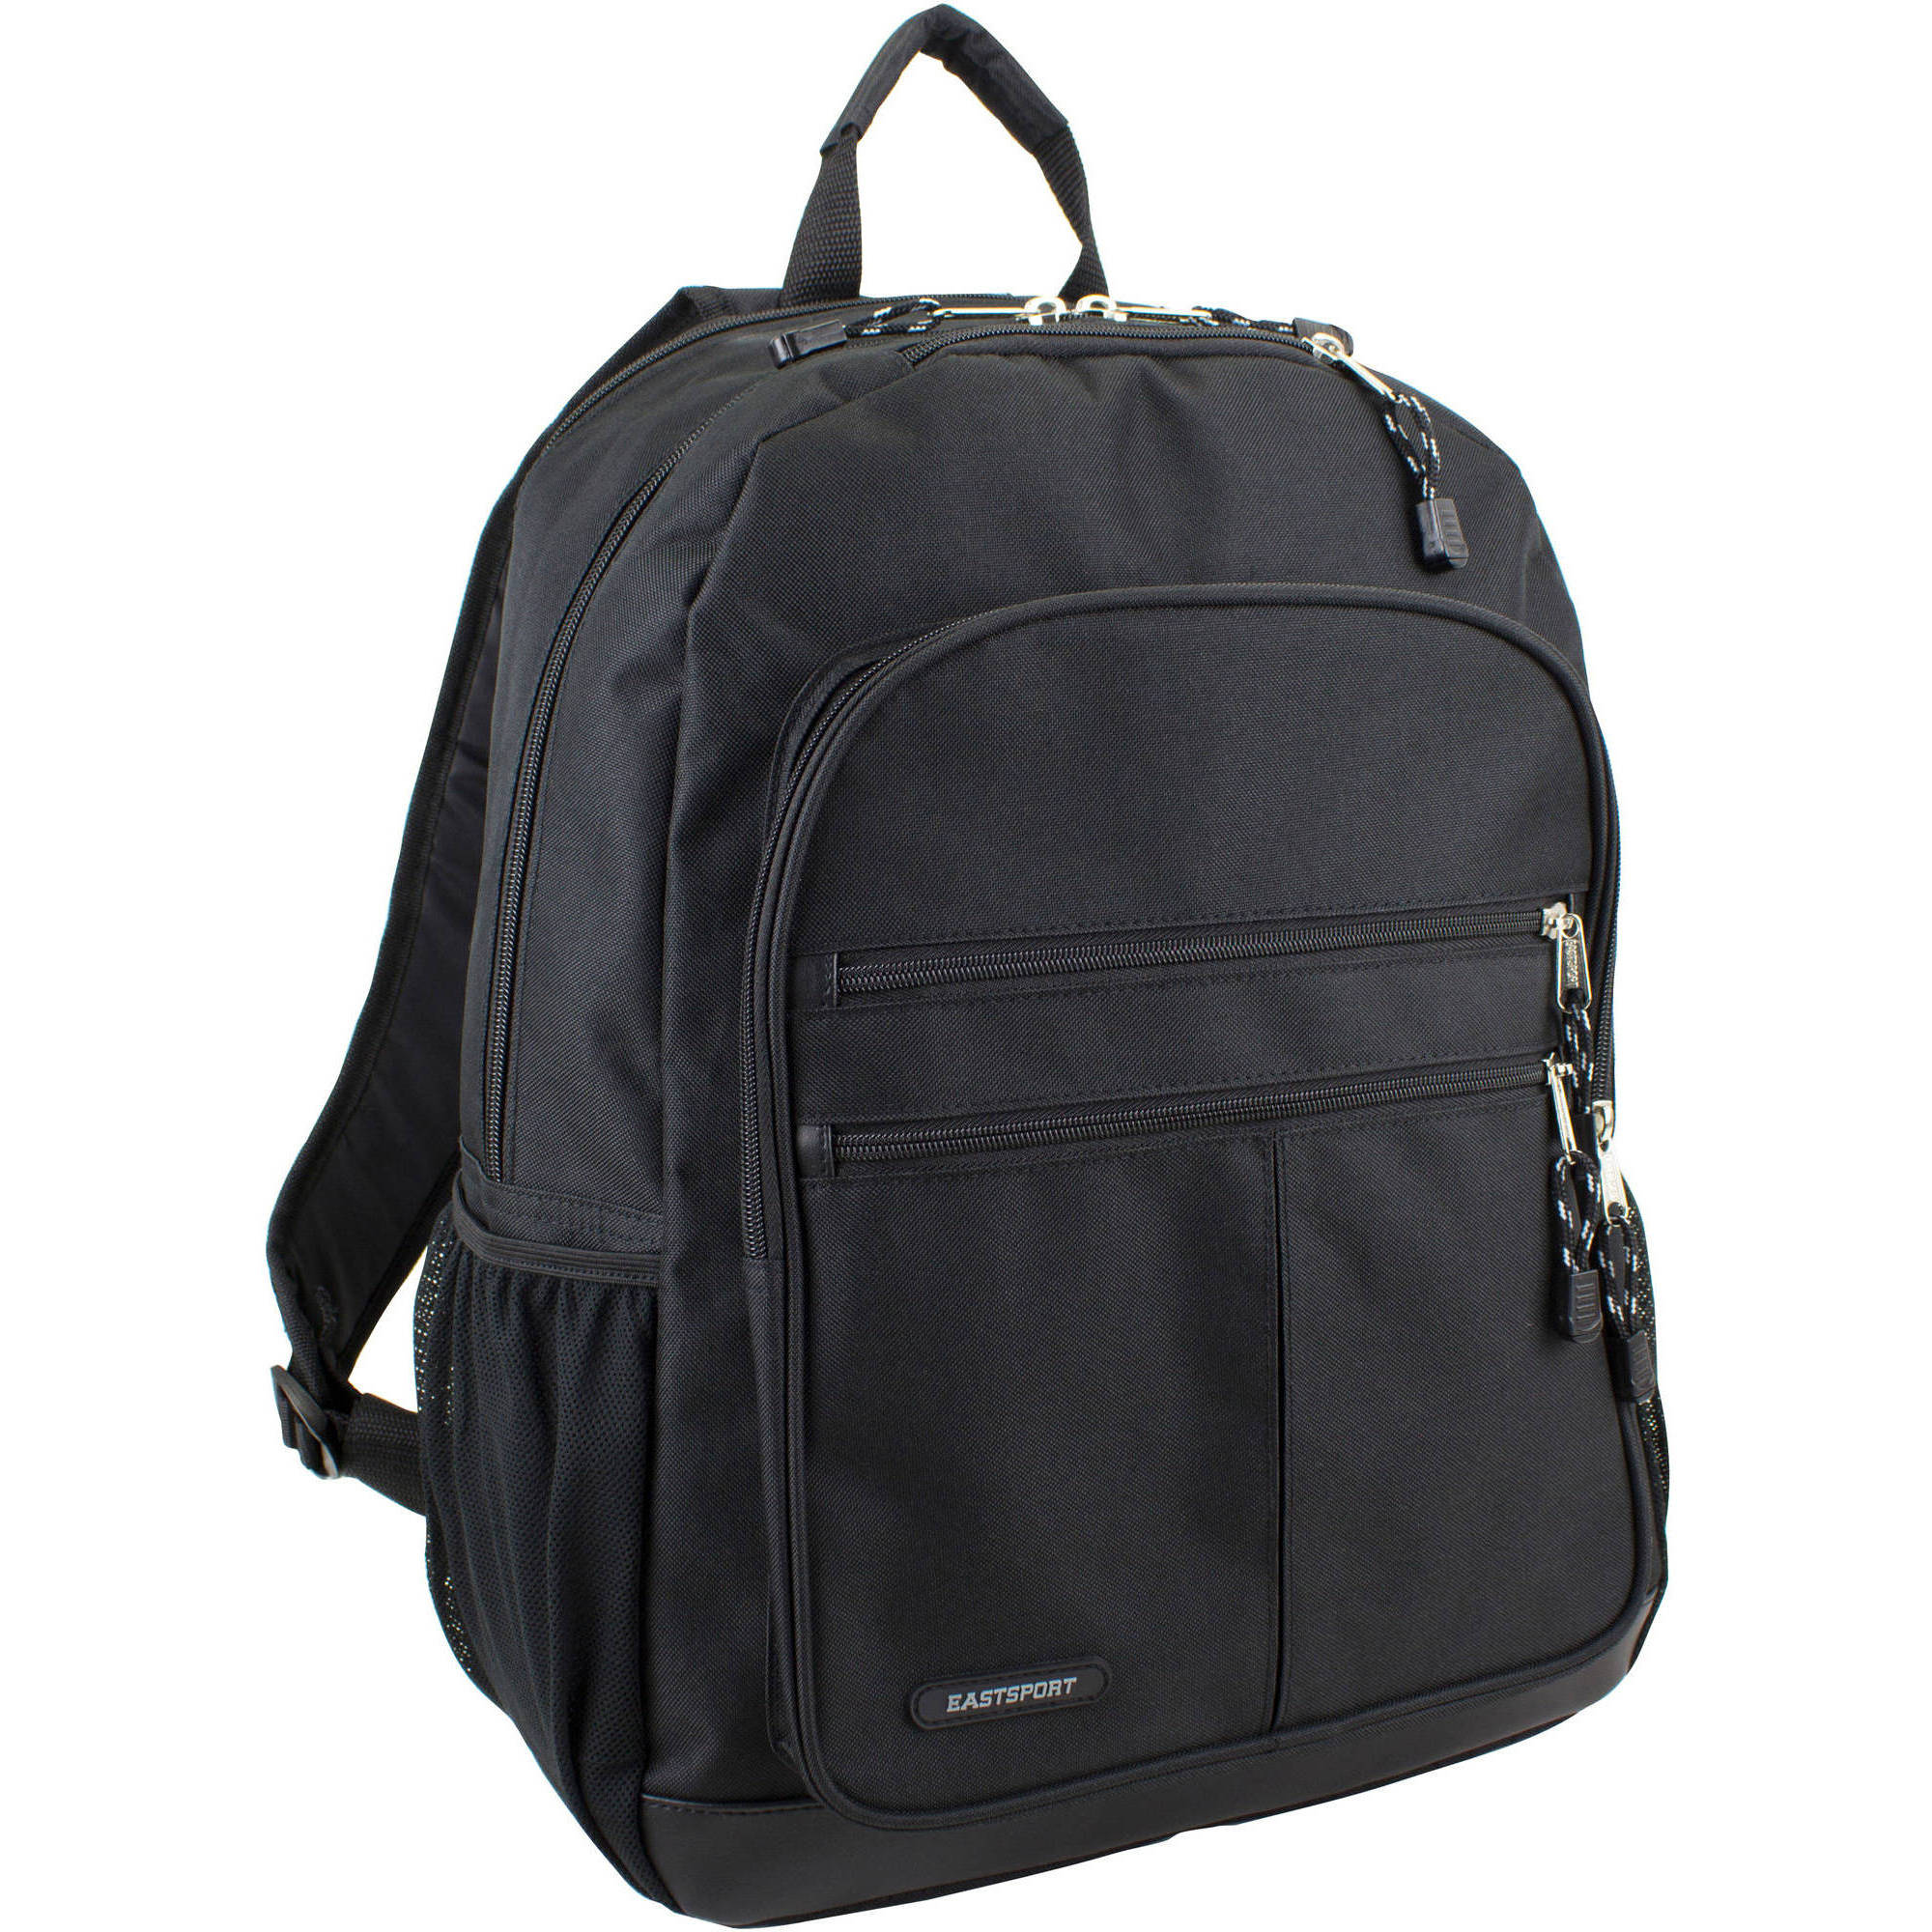 Eastsport Future Tech Backpack